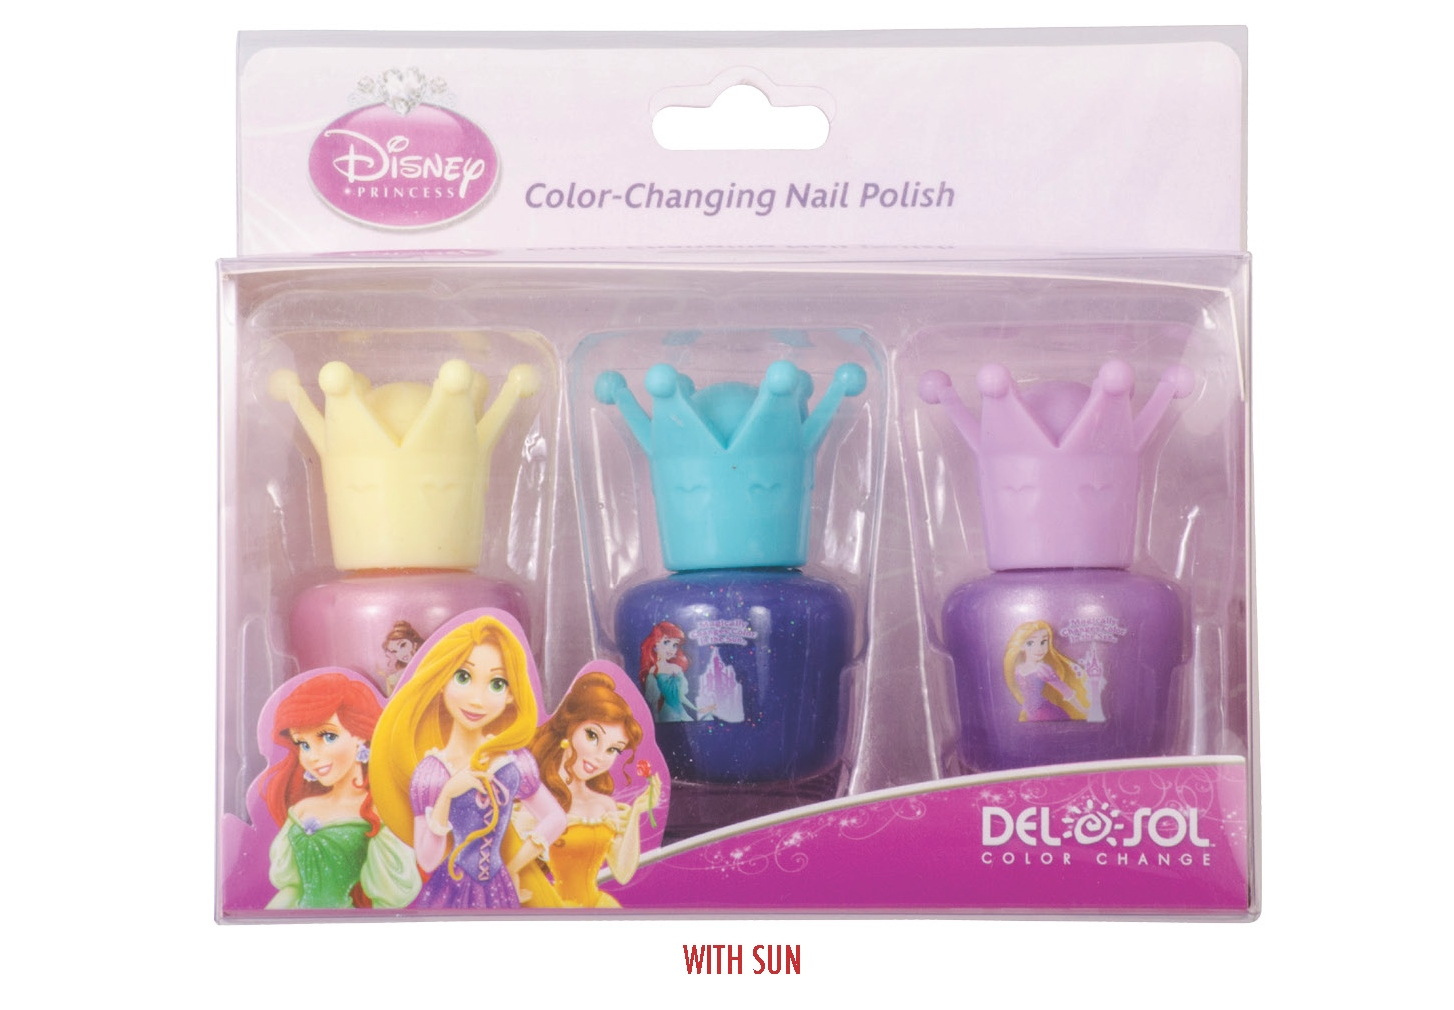 Del Sol Launches New Disney Nail Polish Accessories - Del Sol